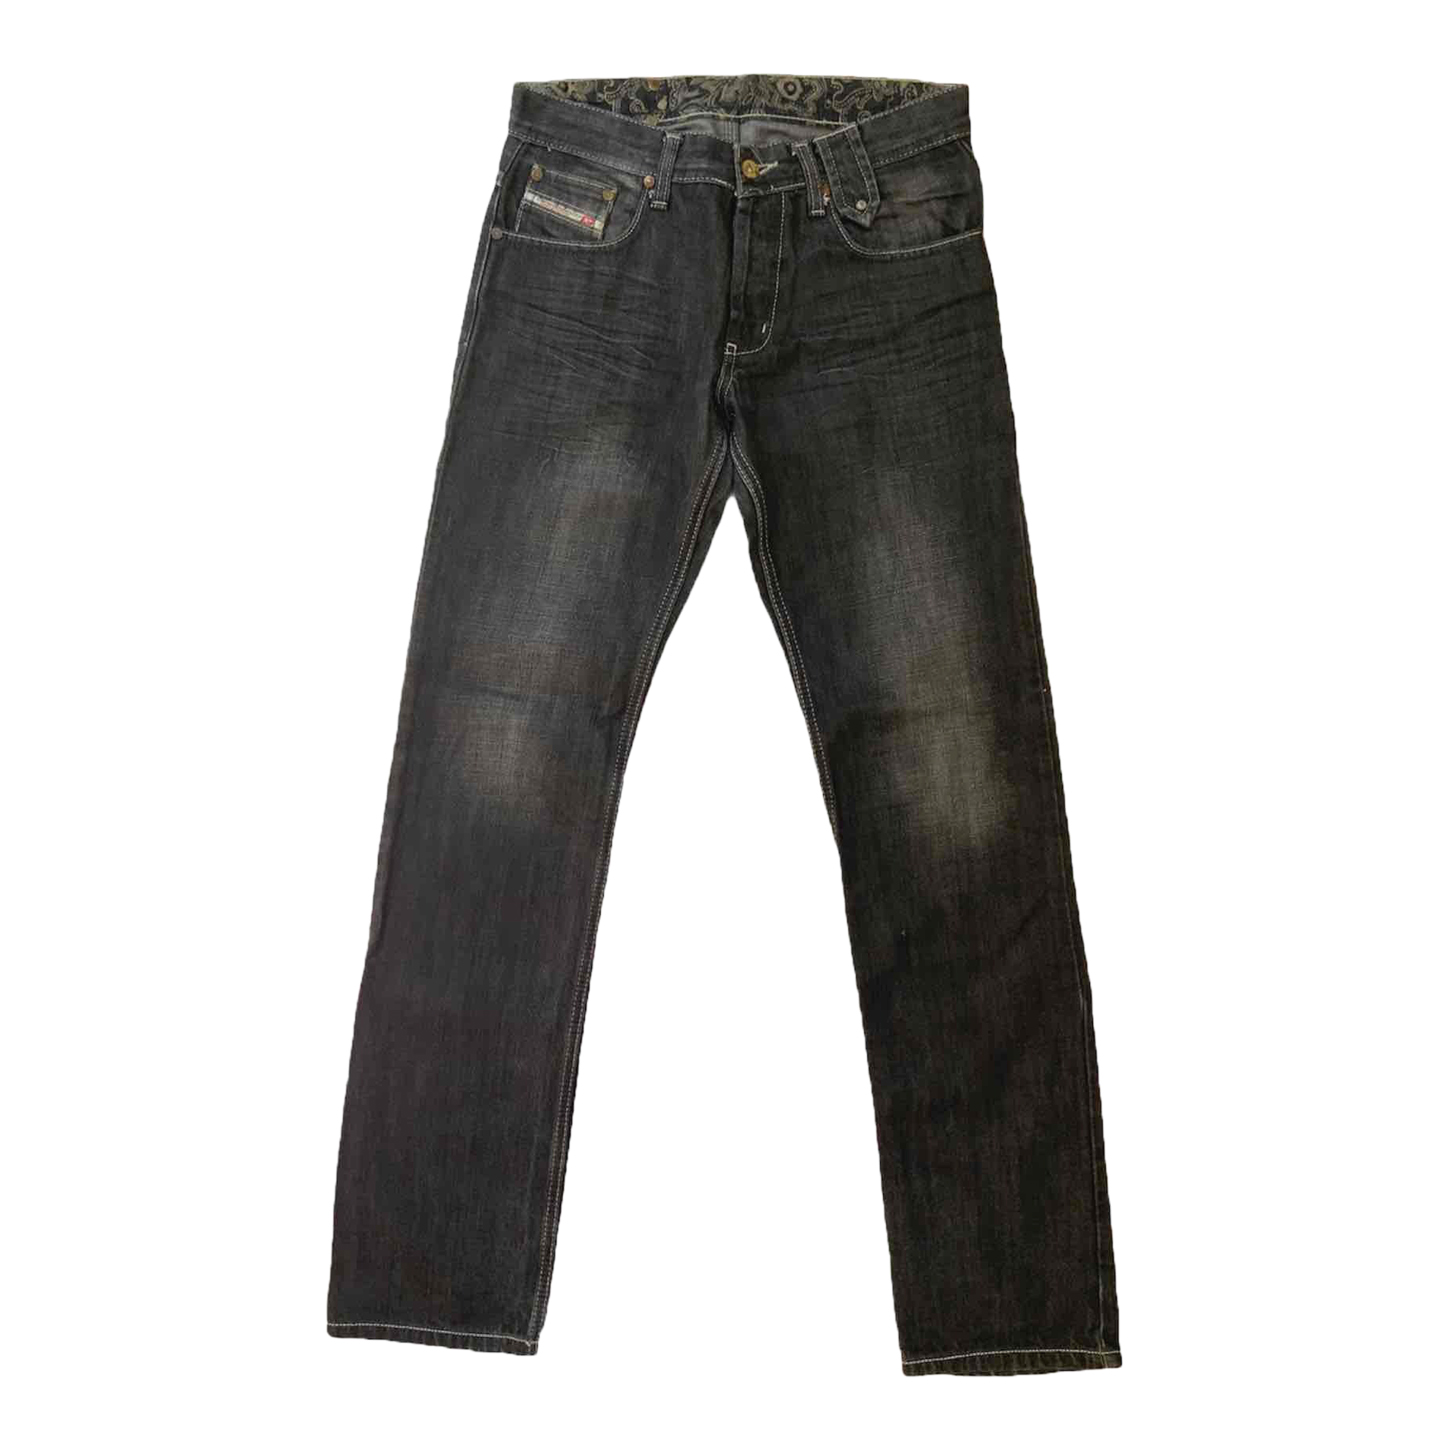 Jean taille basse 90s